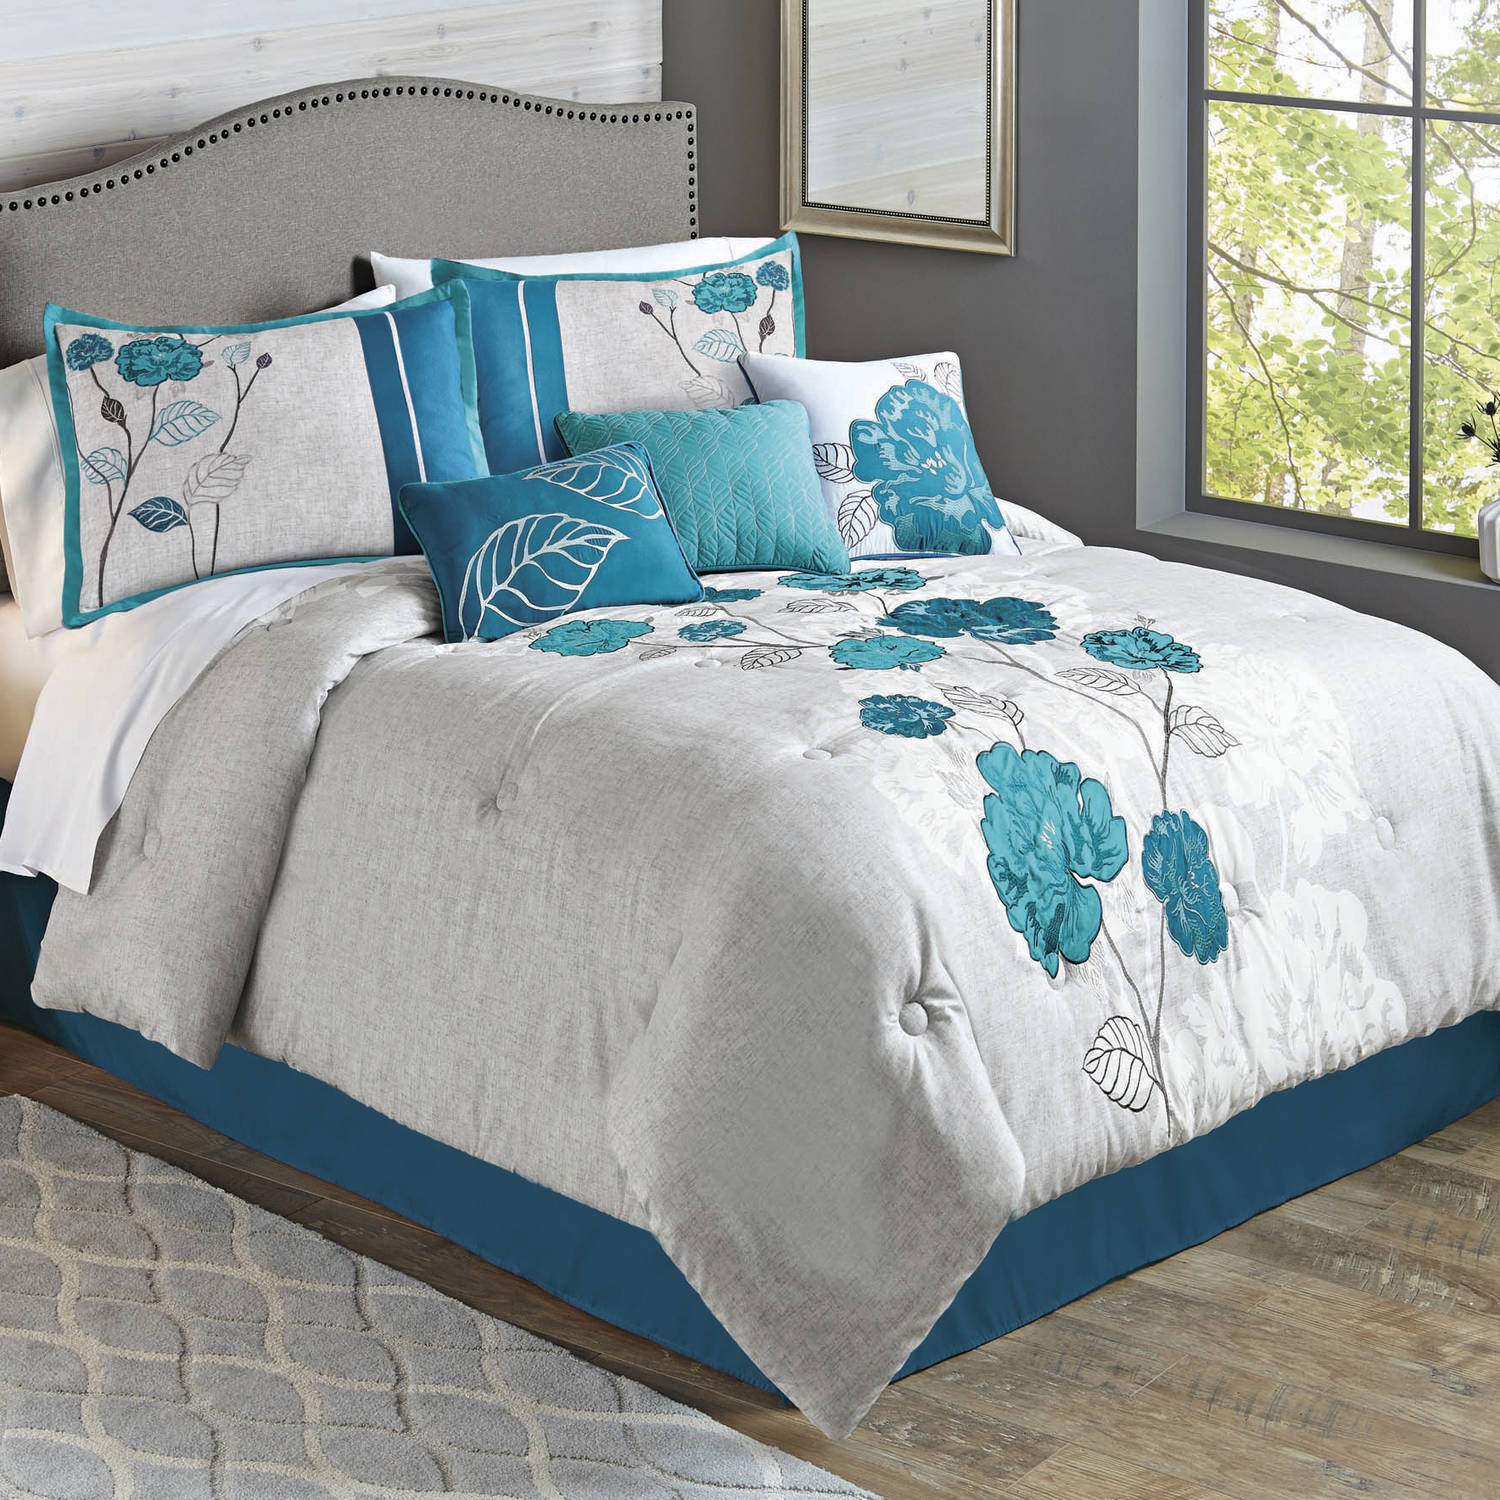 Better Homes and Gardens 7Piece Blooming Teal Roses Comforter Set